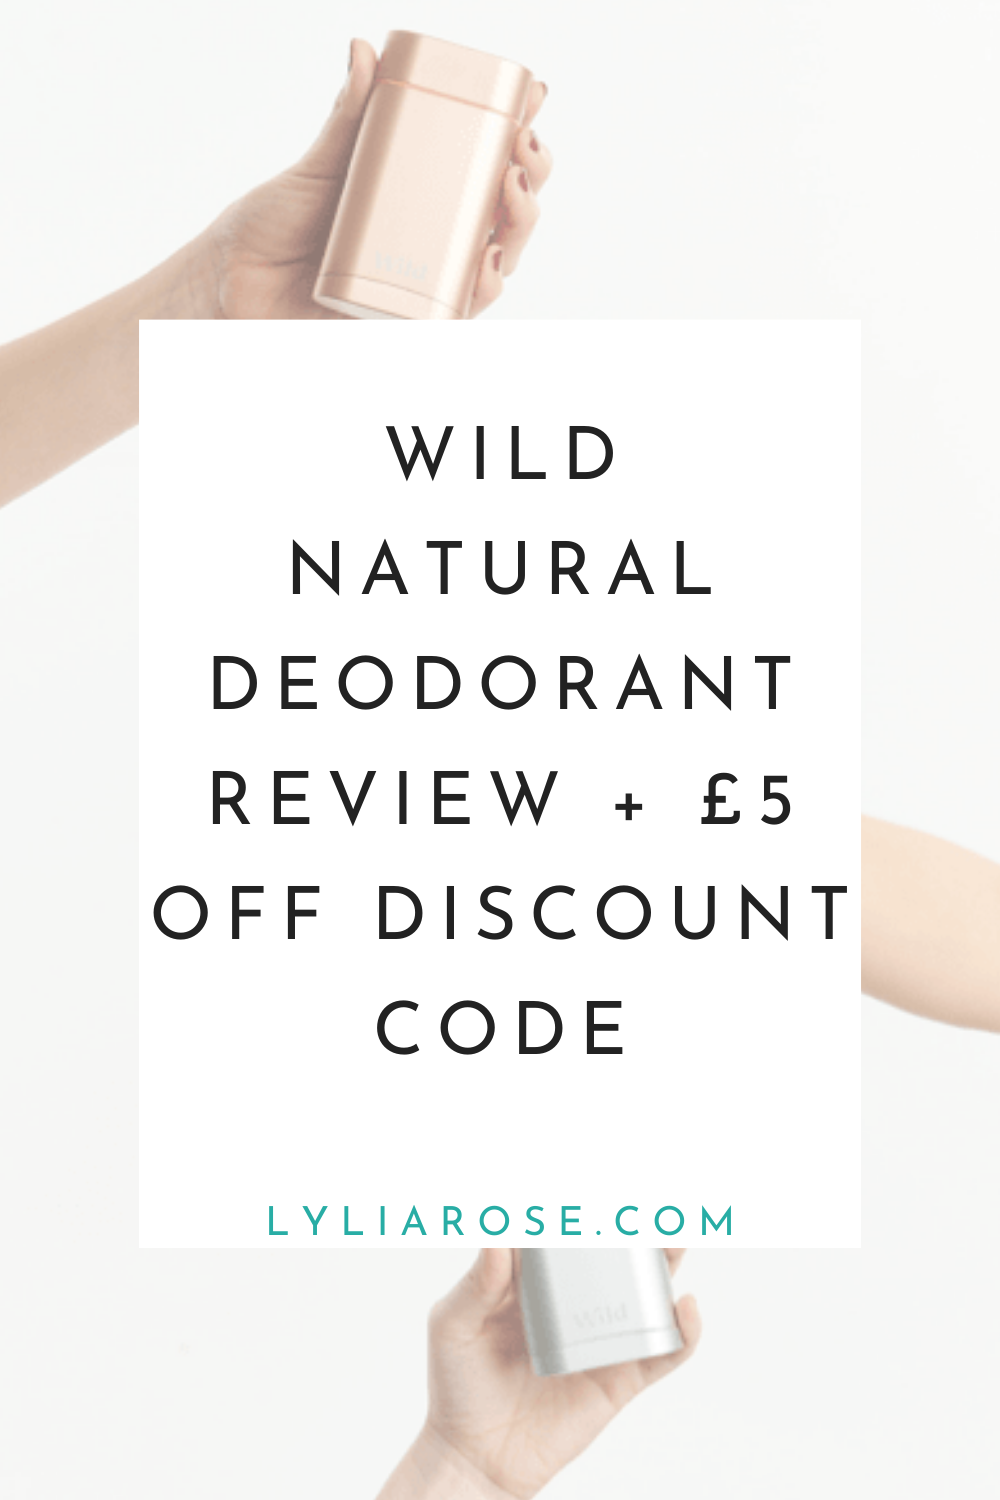 Wild natural deodorant review discount code